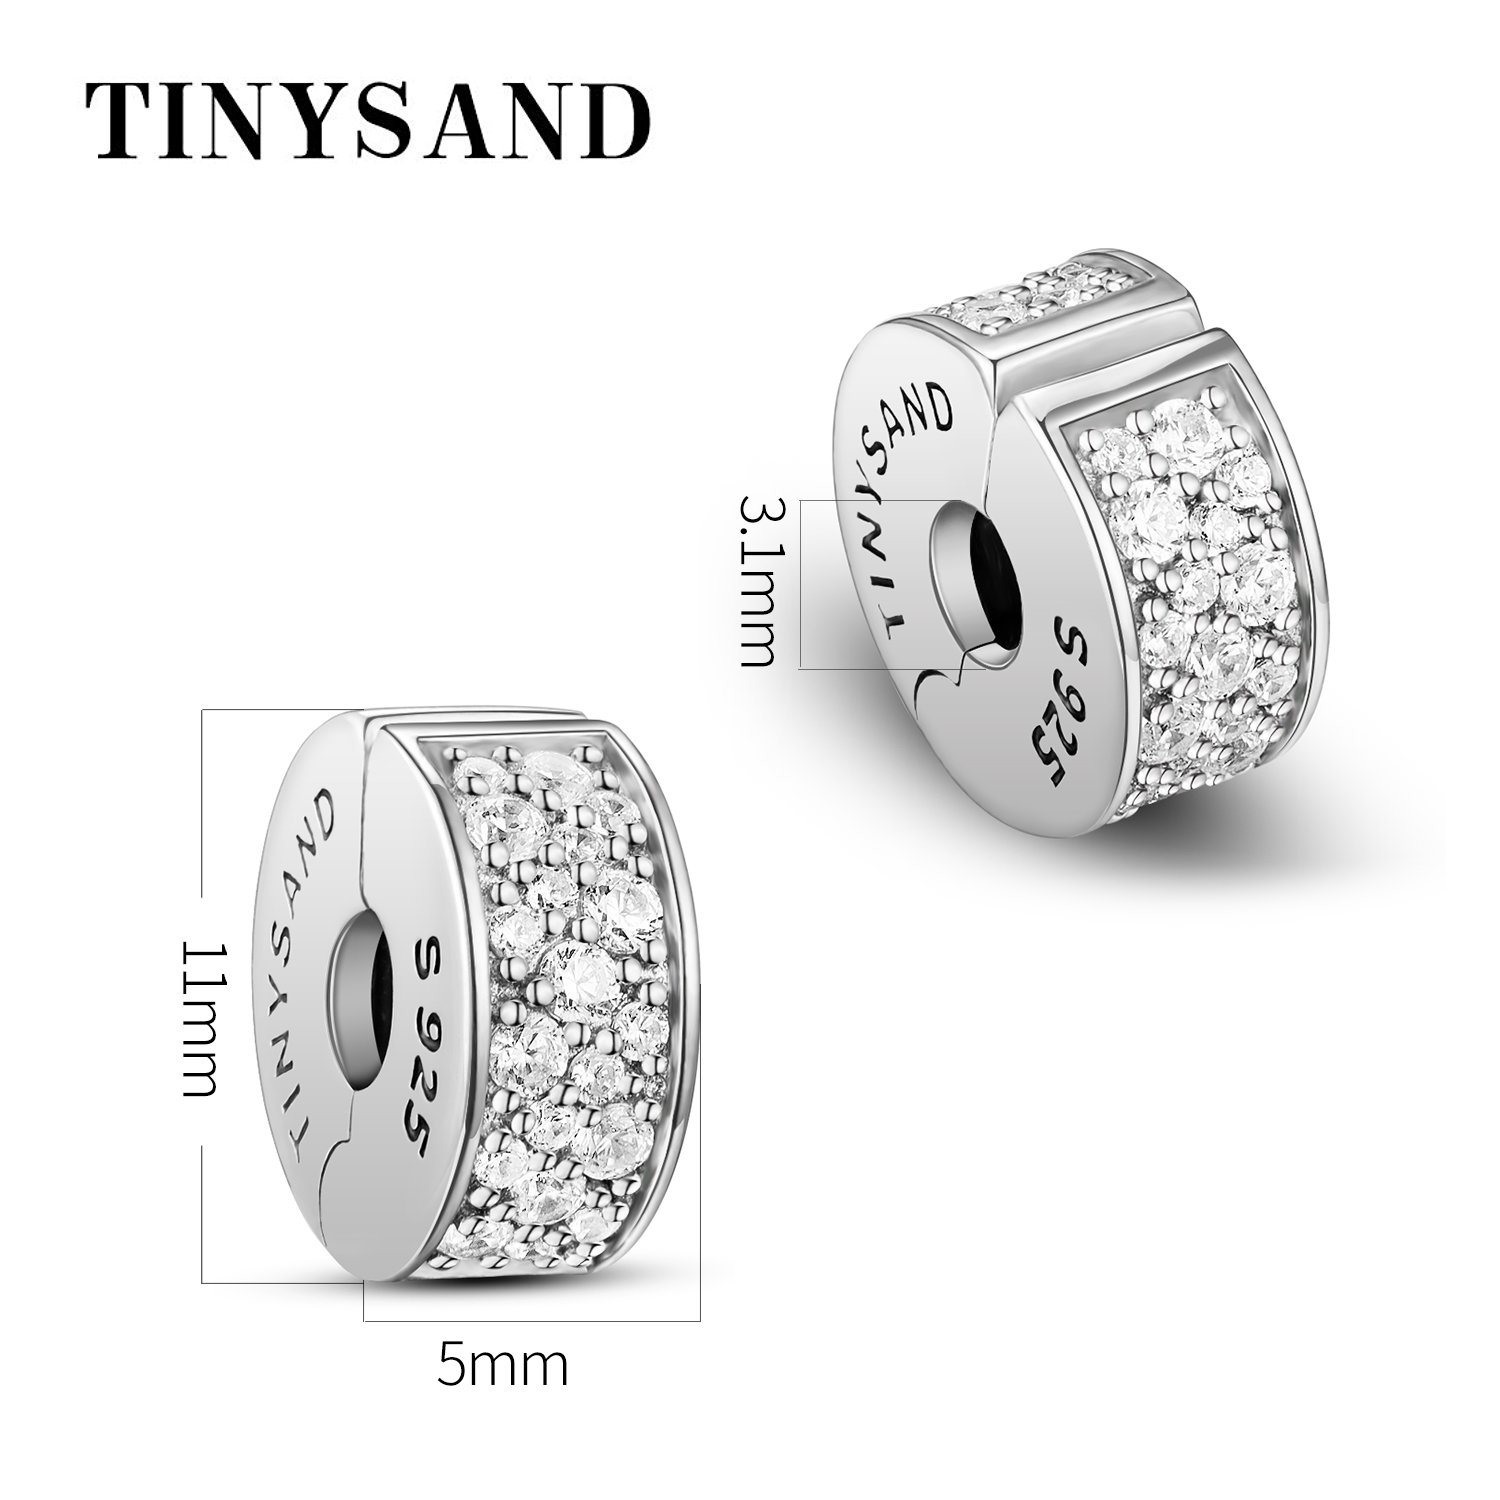 TINYSAND 925 Sterling Silver Dazzling CZ Clip Lock Stopper Spacers Charms Beads Fits European Snake Bracelet Bangle Unique Jewelry for Girls Women by TINYSAND (Image #3)